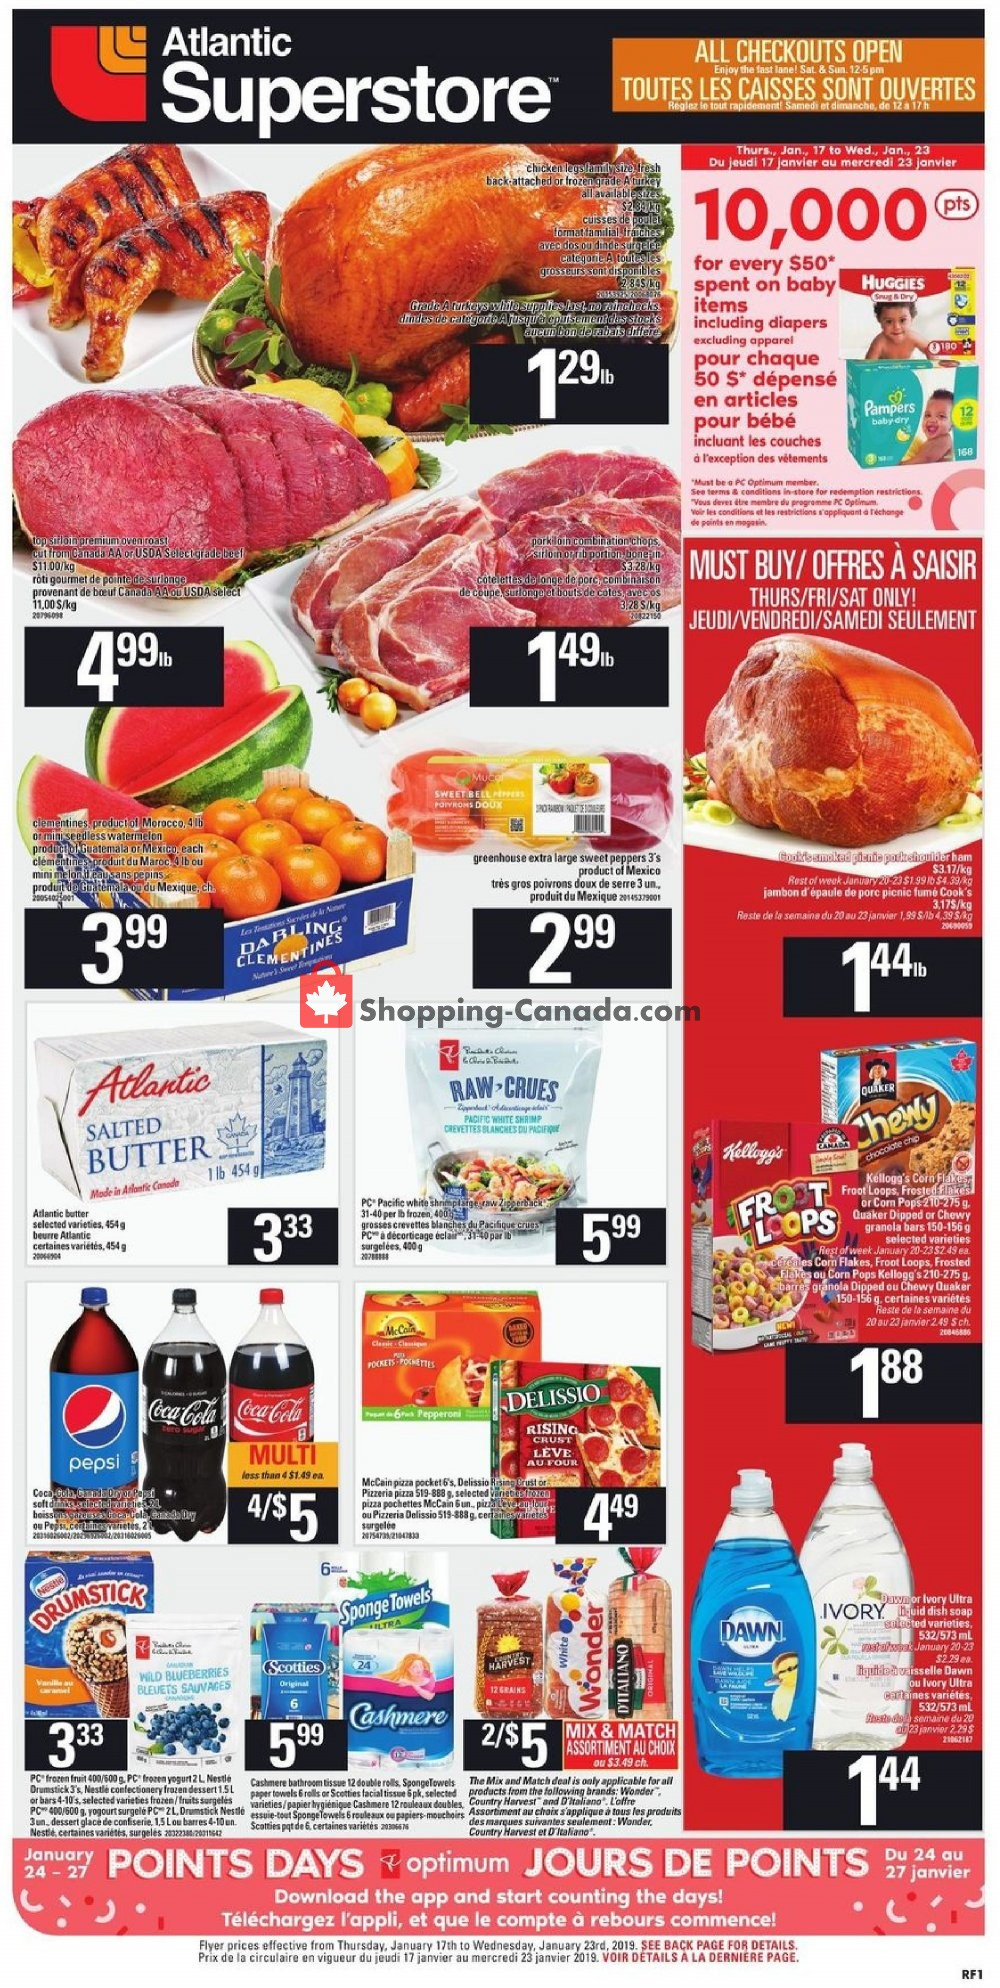 Flyer Atlantic Superstore Canada - from Thursday January 17, 2019 to Wednesday January 23, 2019